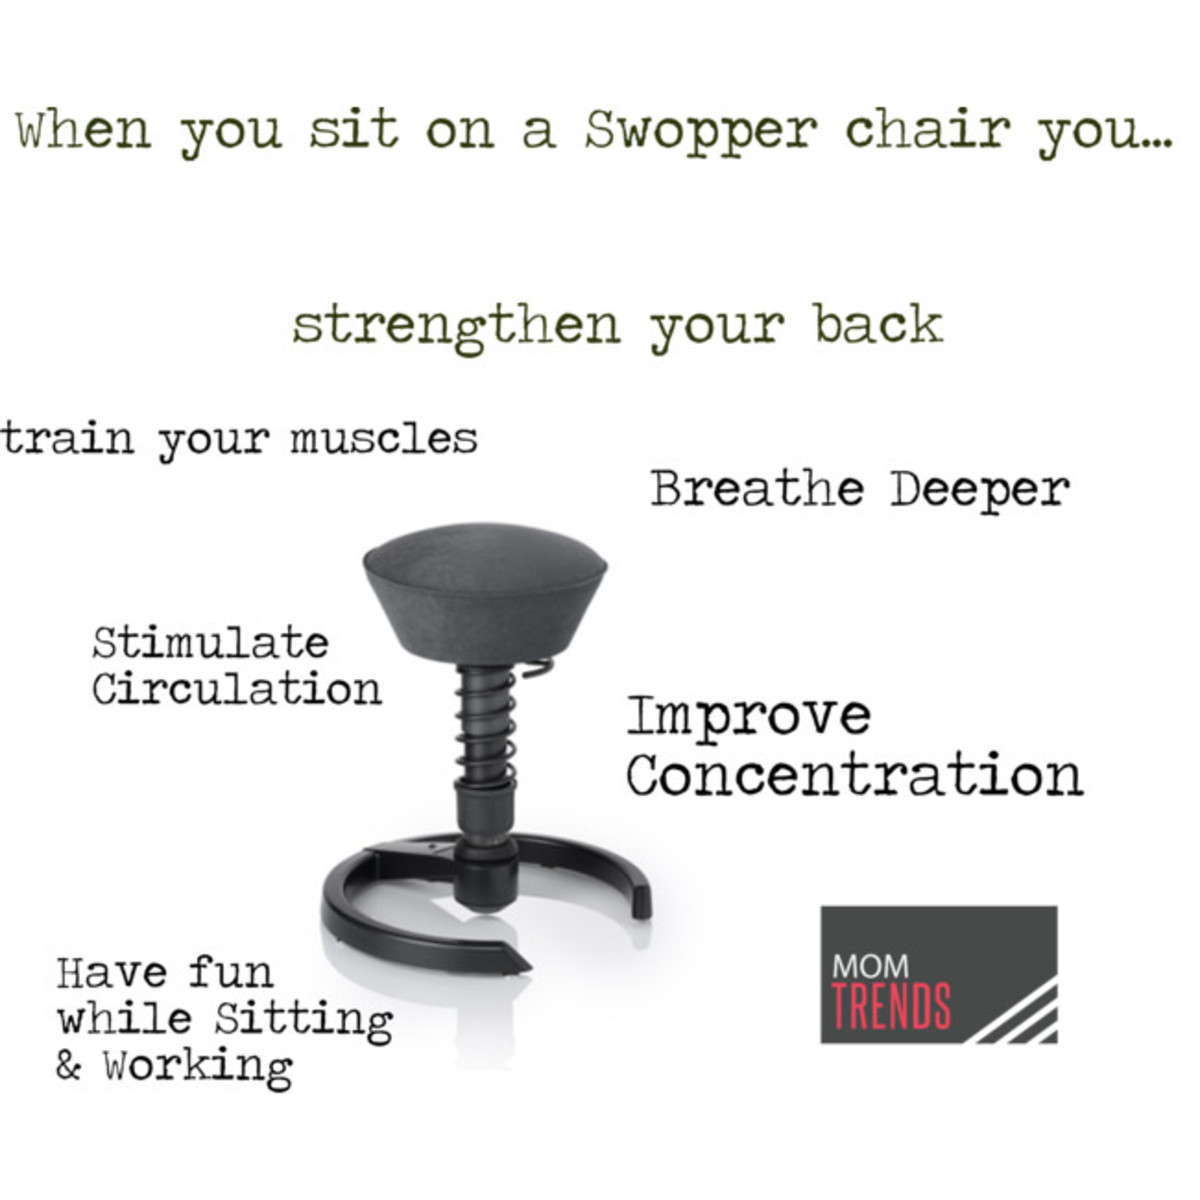 Swopper chair